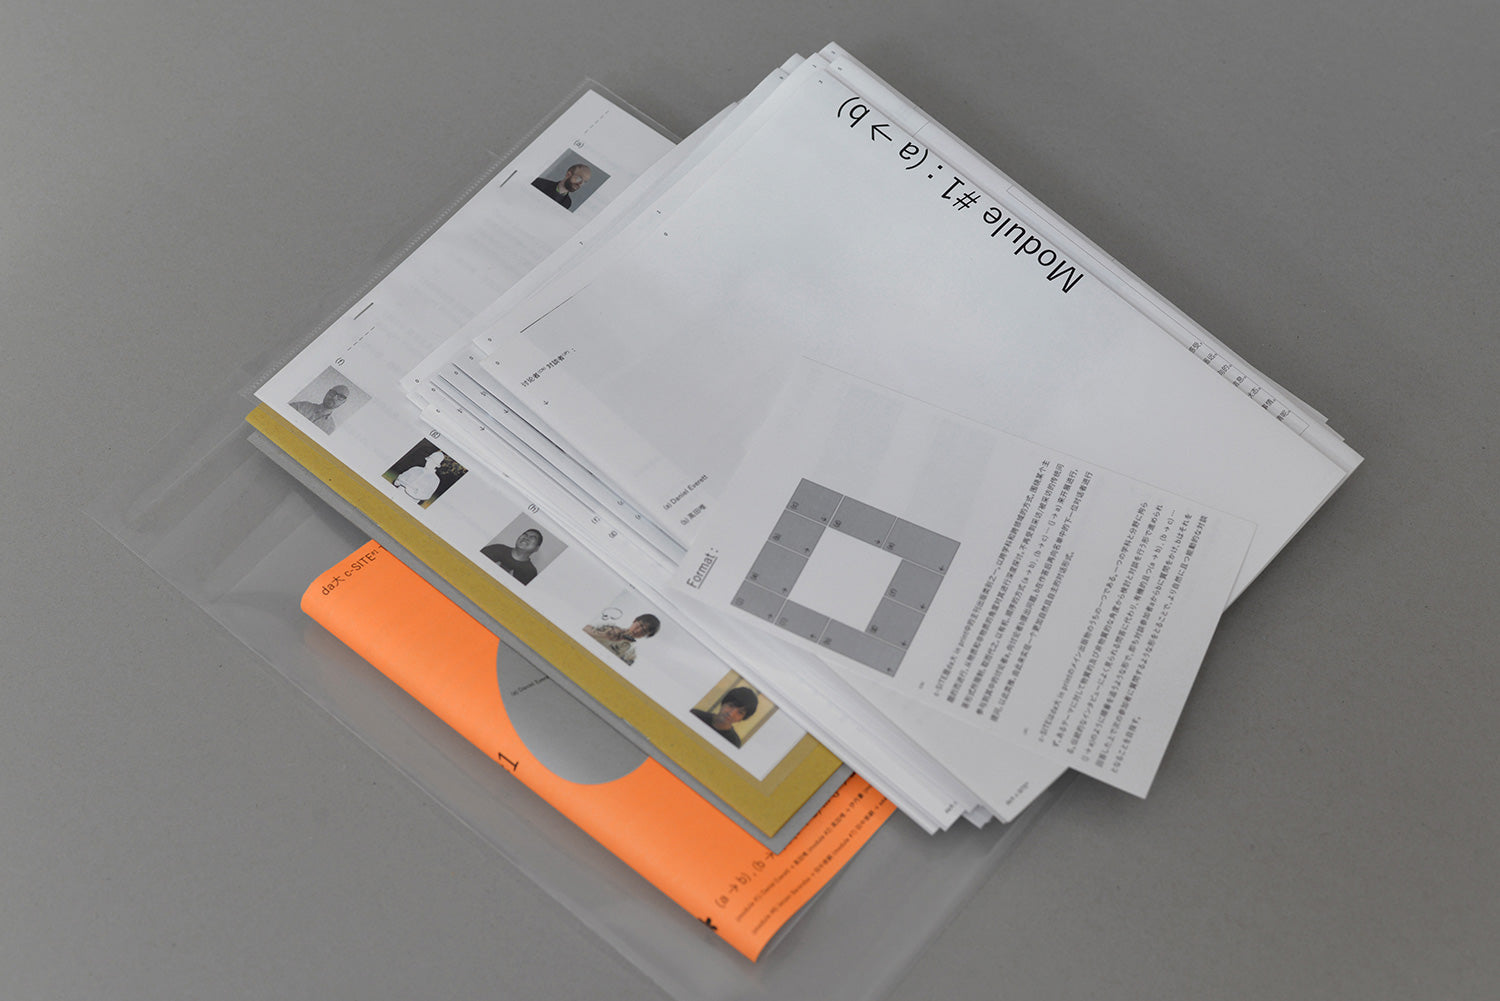 ori.studio, Beijing based design practice. Book design and publishing for c-SITE#1.